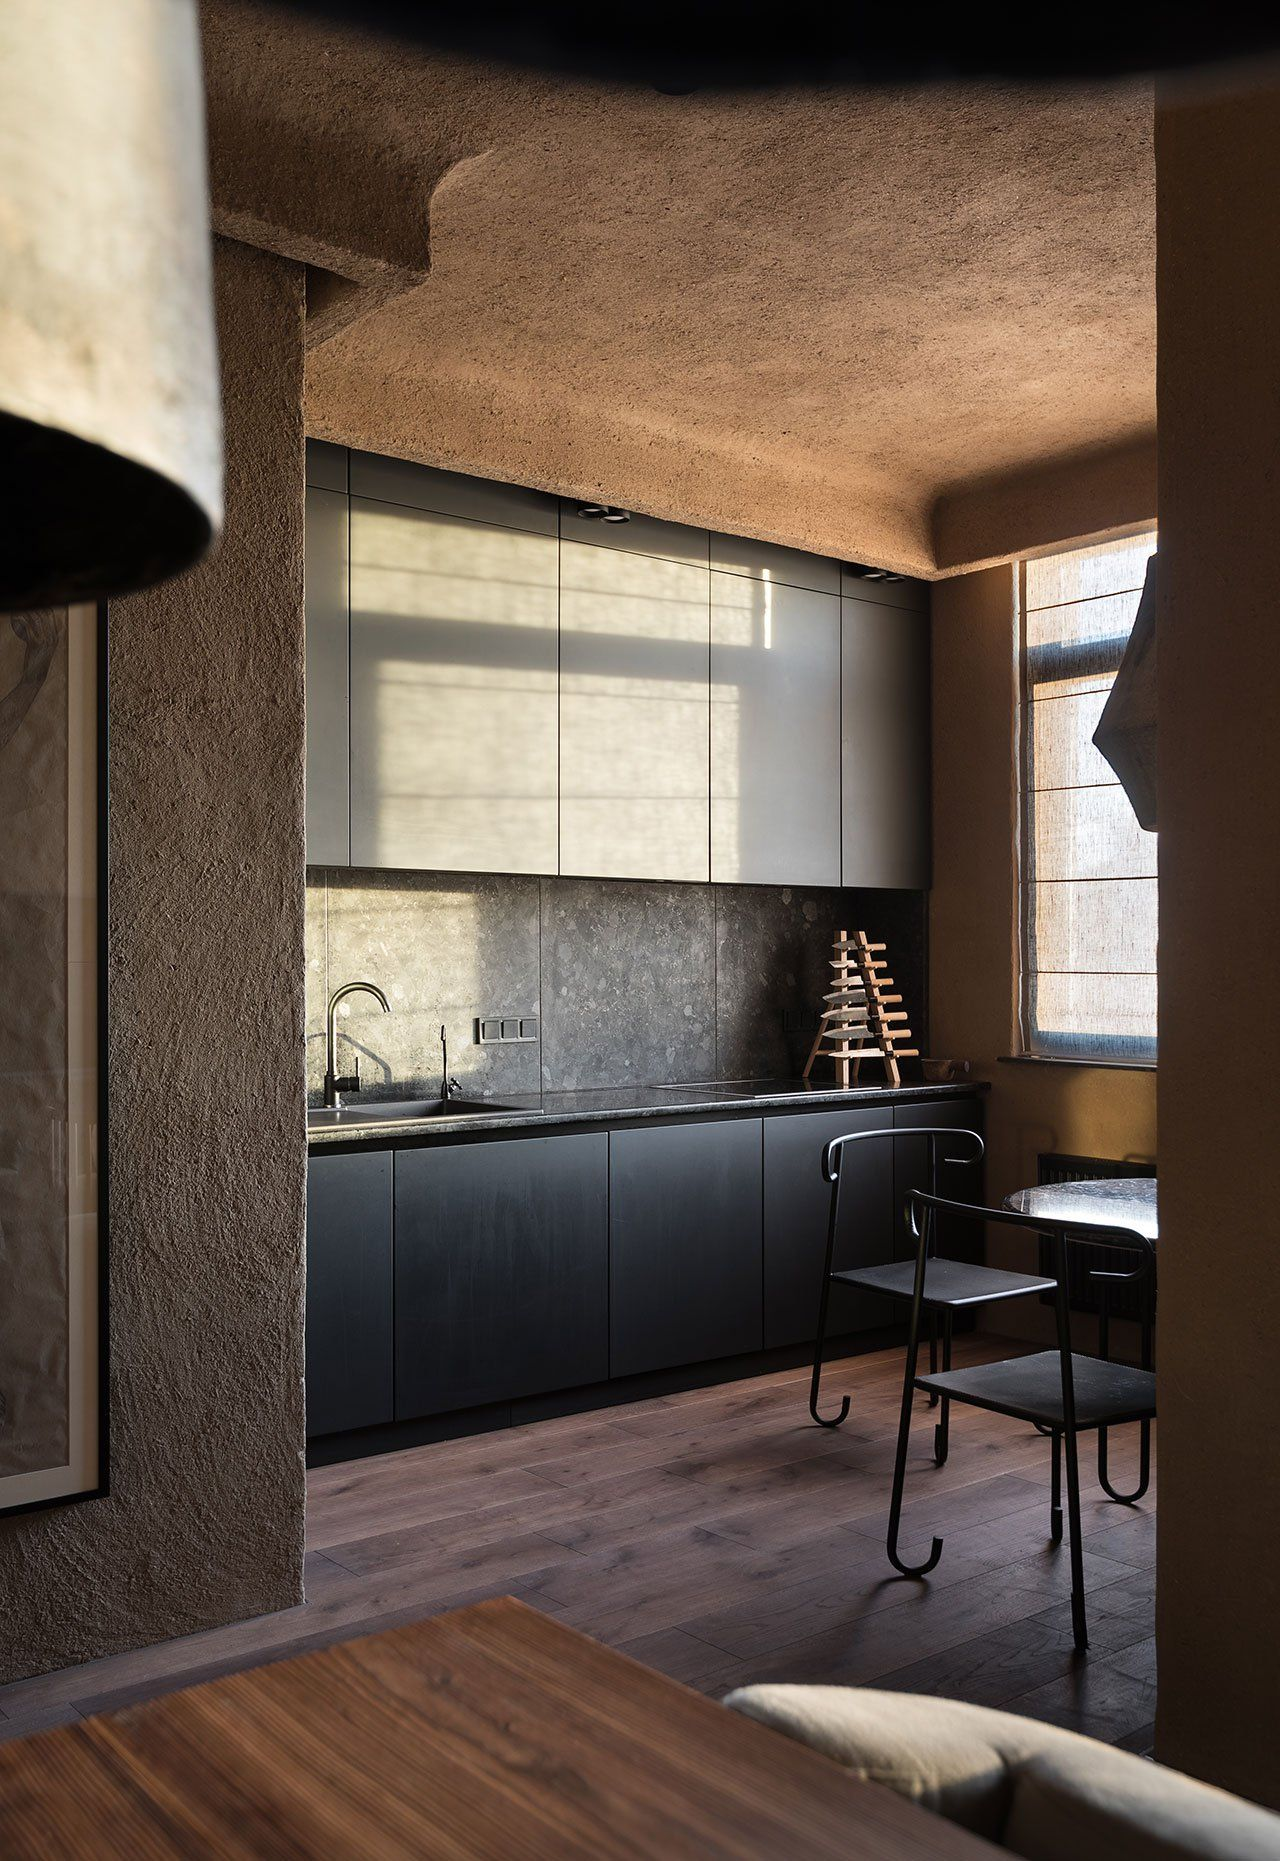 imperfection is beautiful the wabi sabi apartment by sergey makhno in kiev ukraine inspiring. Black Bedroom Furniture Sets. Home Design Ideas